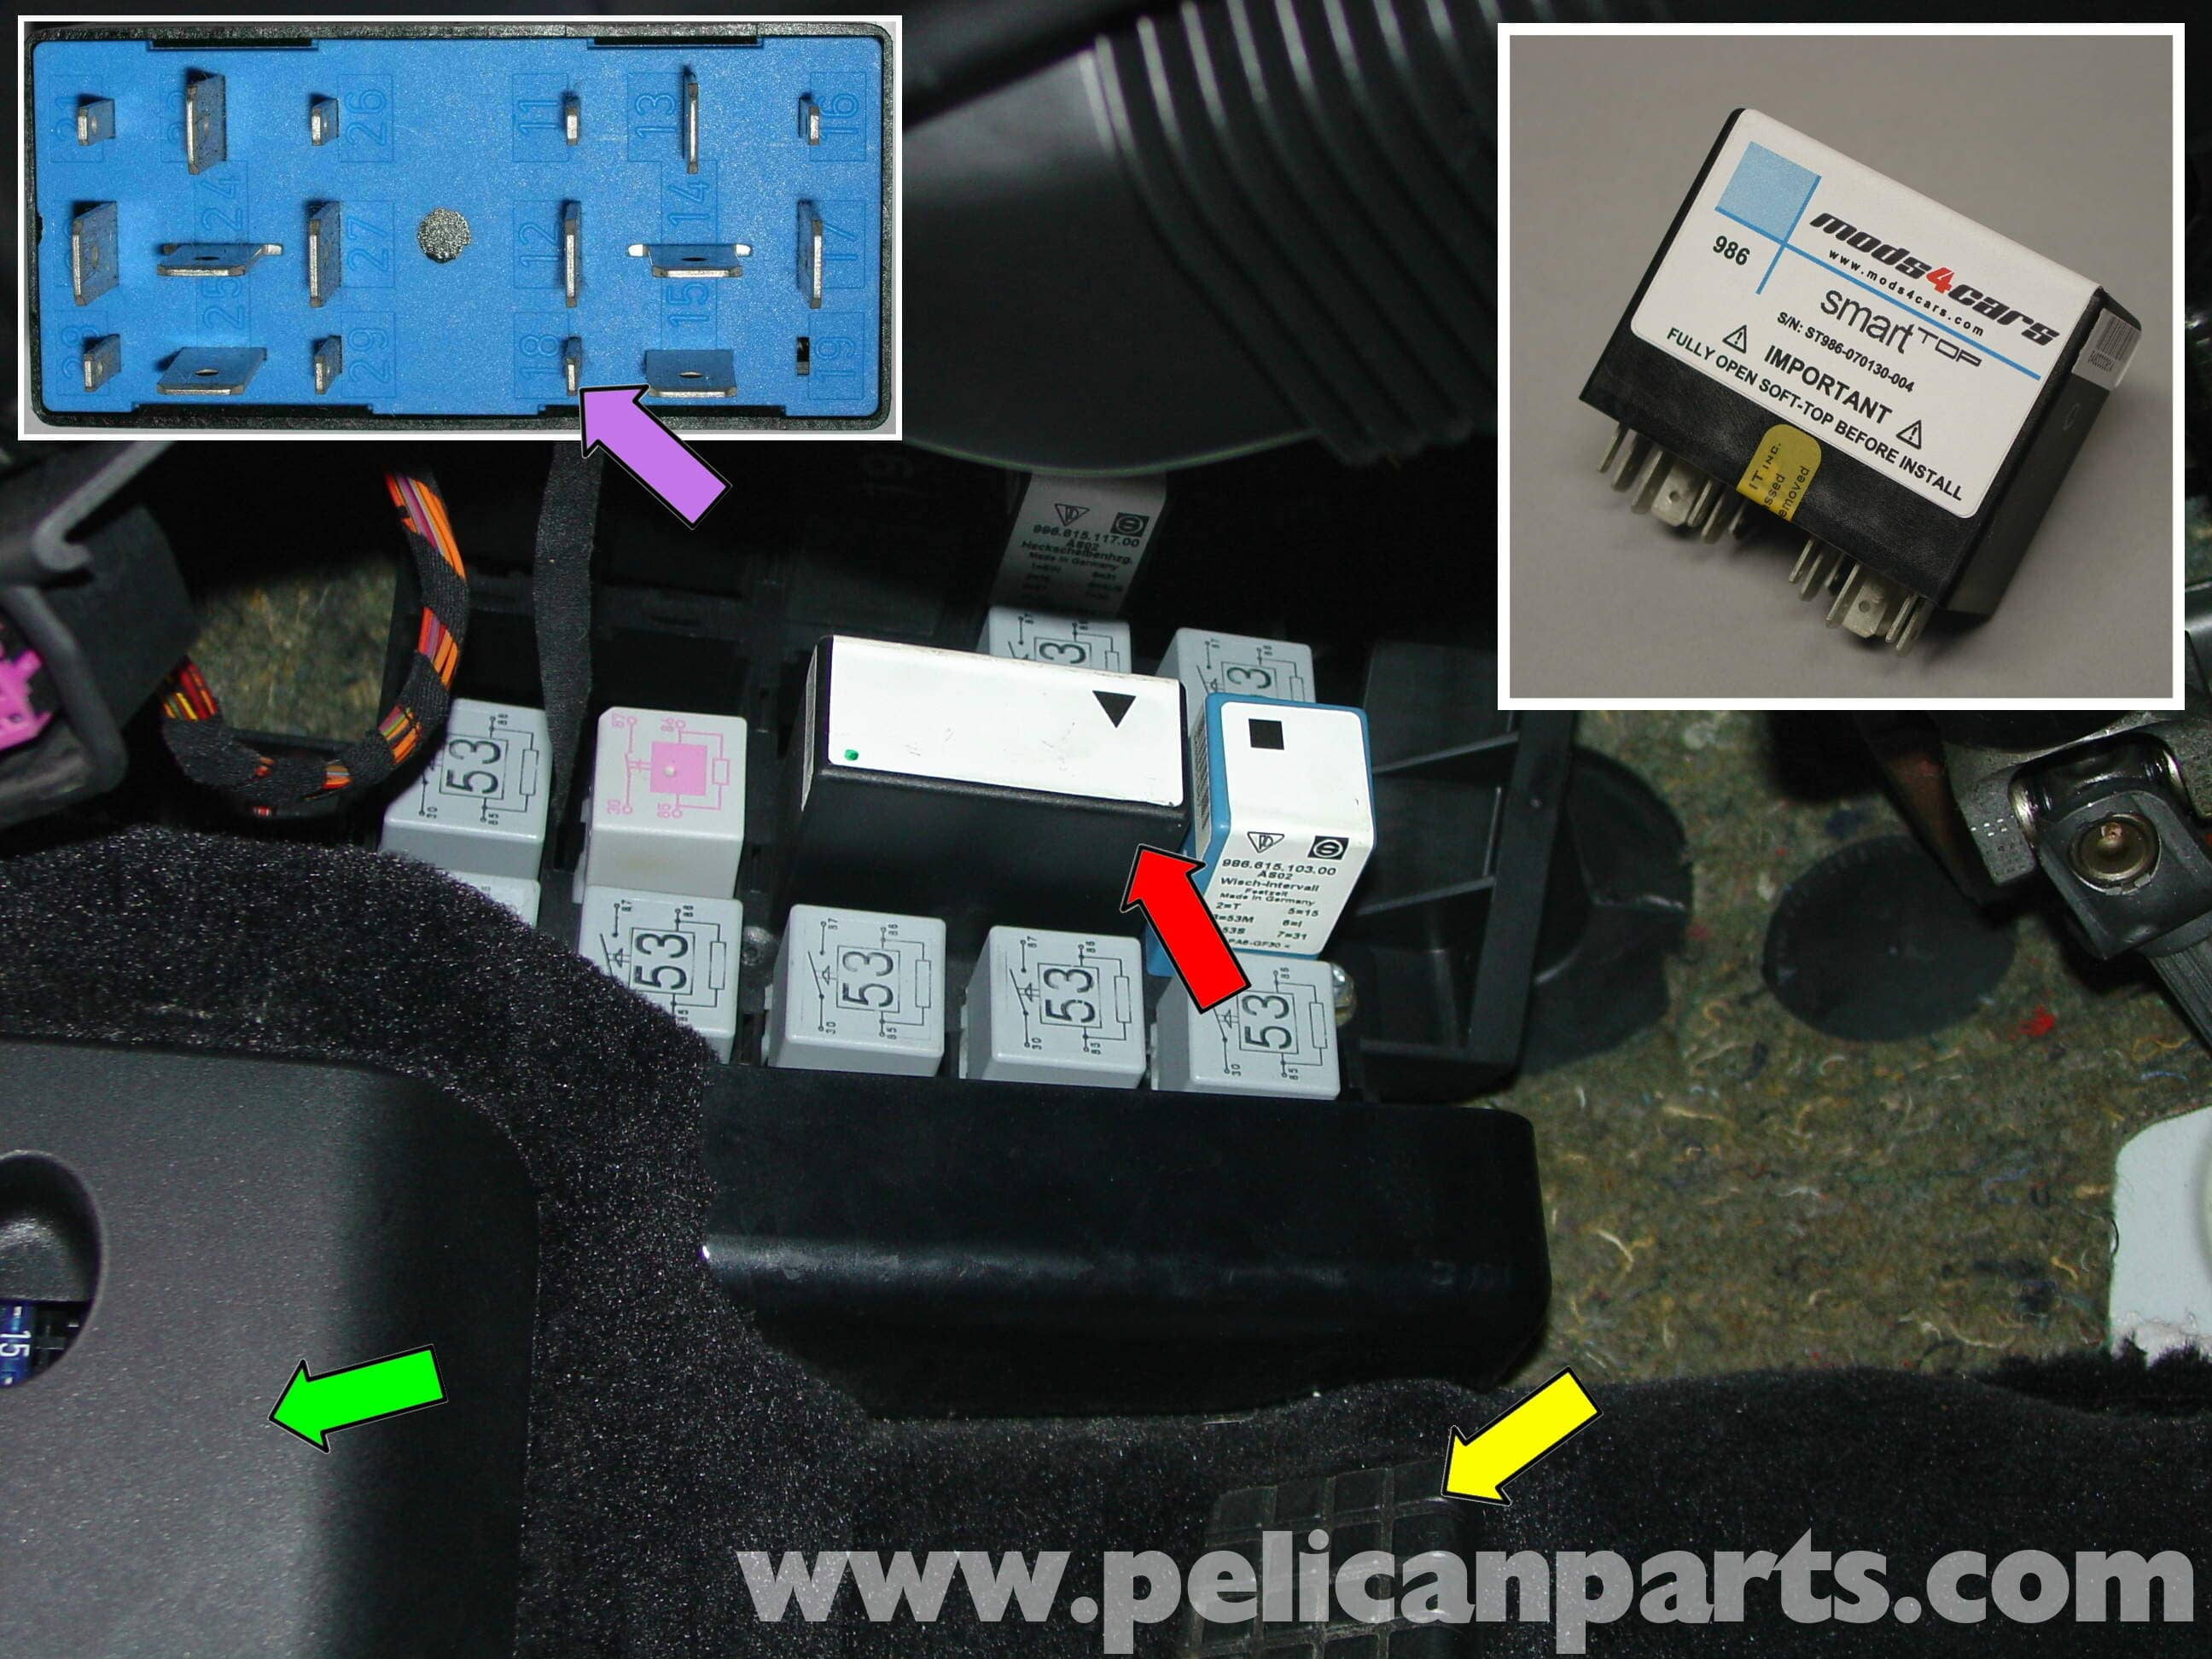 Porsche Boxster Fuse Location Auto Electrical Wiring Diagram 2003 Infiniti I35 Box 2004 G35 Coupe Smart Top Roof Control Installation